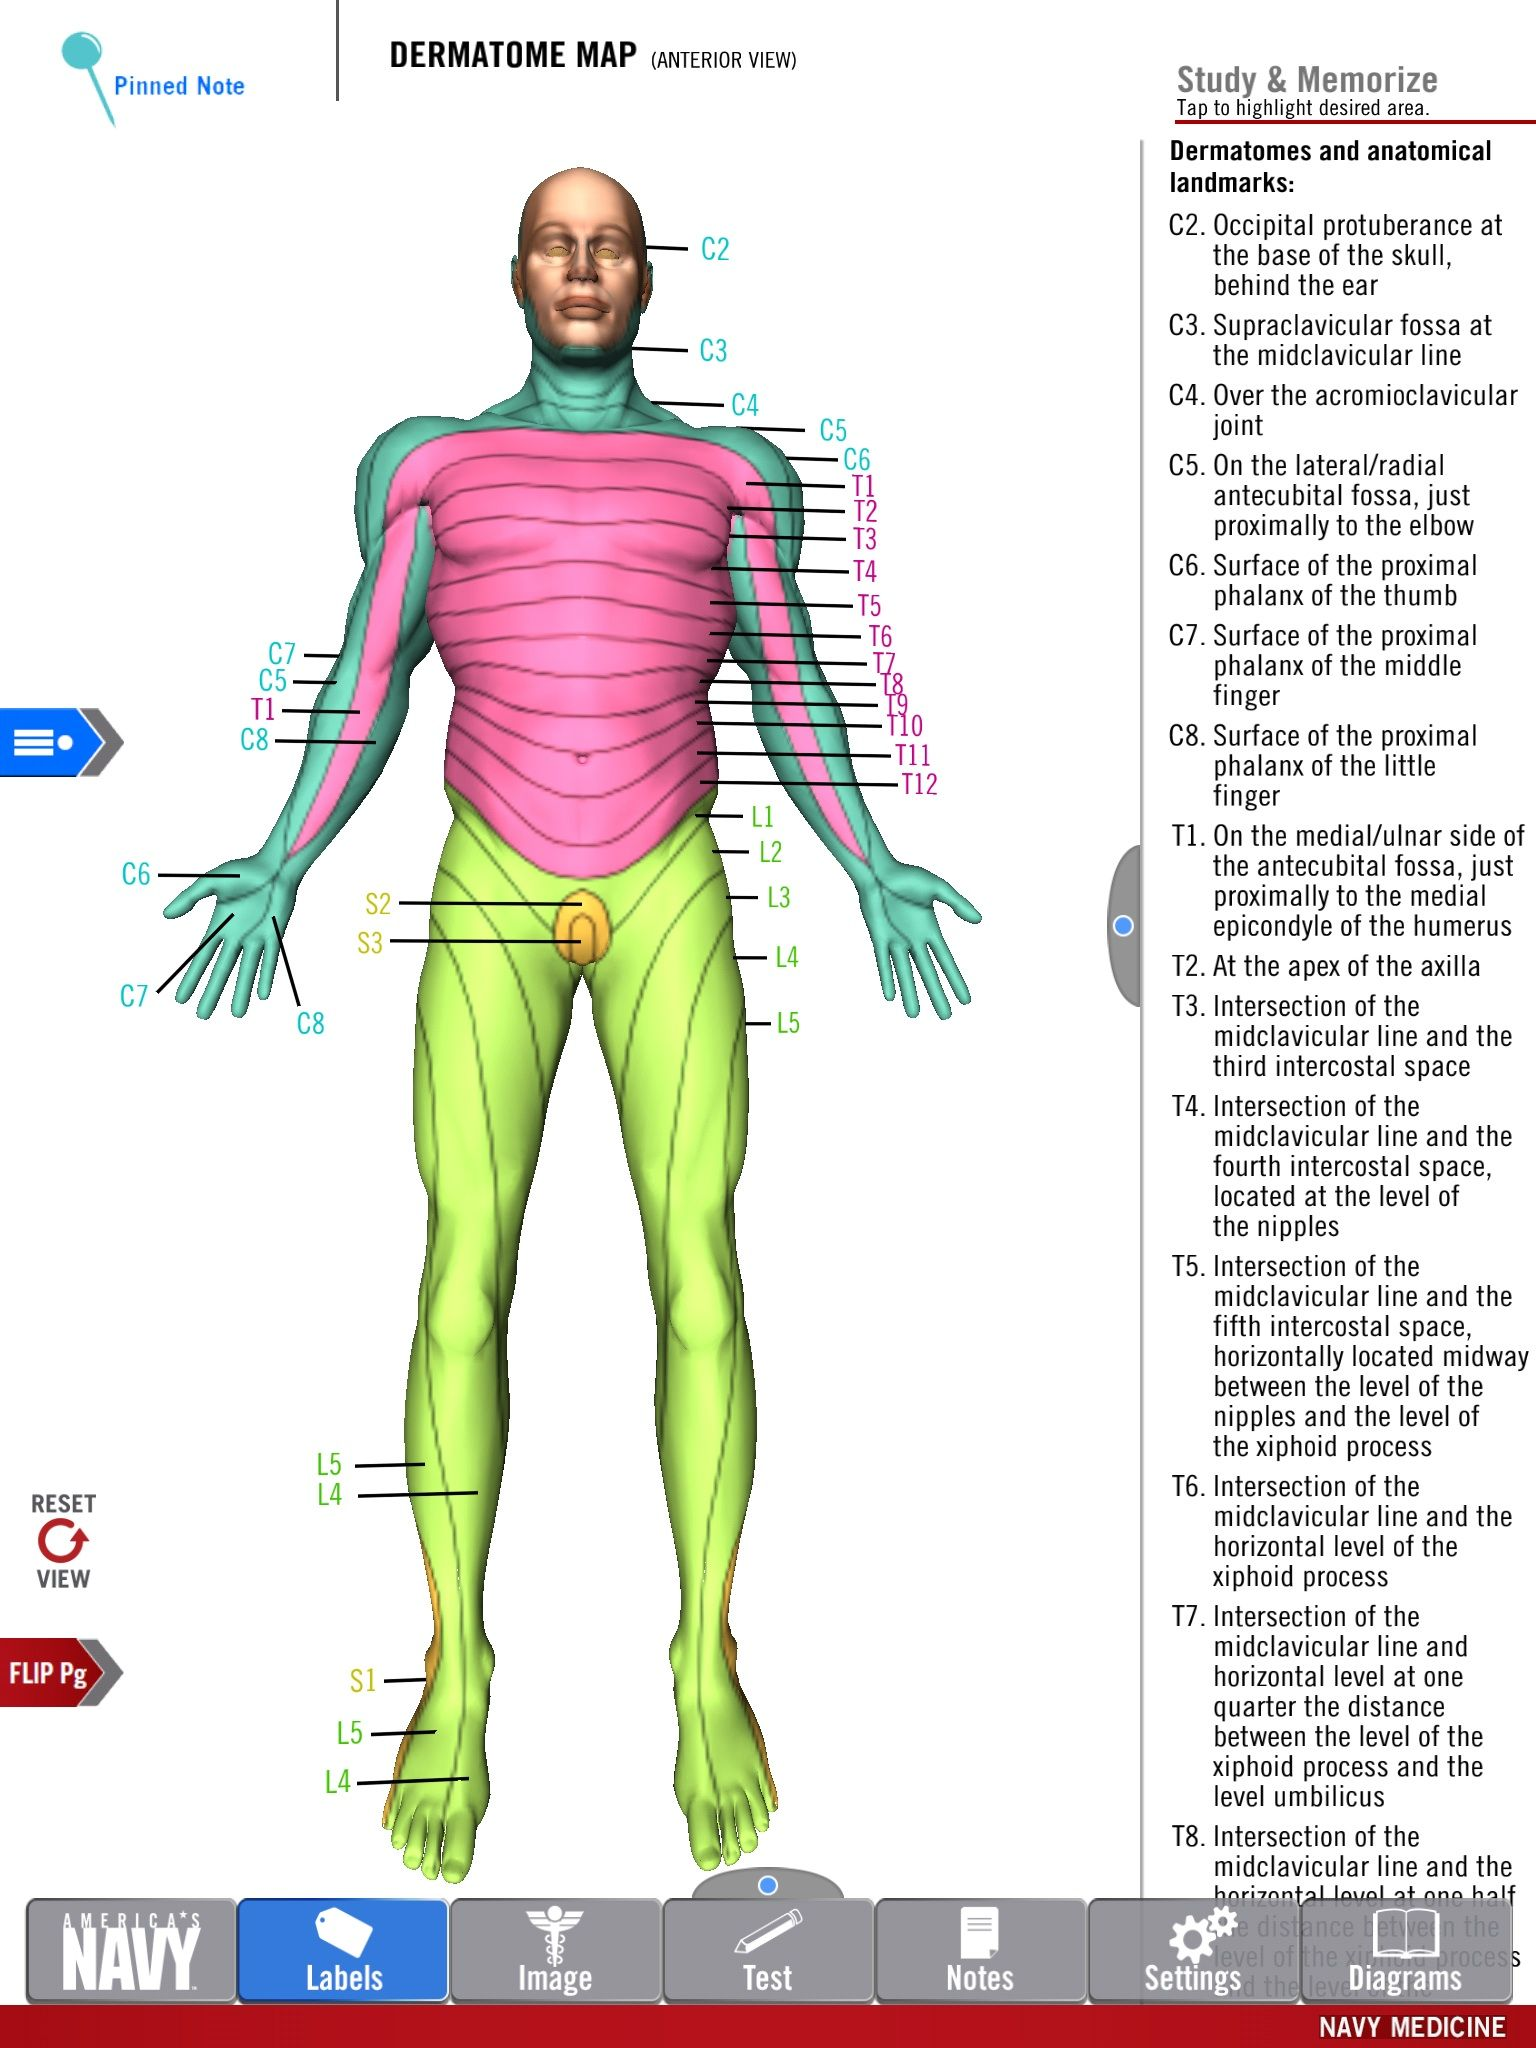 Diagram of the Dermatome Map from the free Anatomy Study Guide app ...